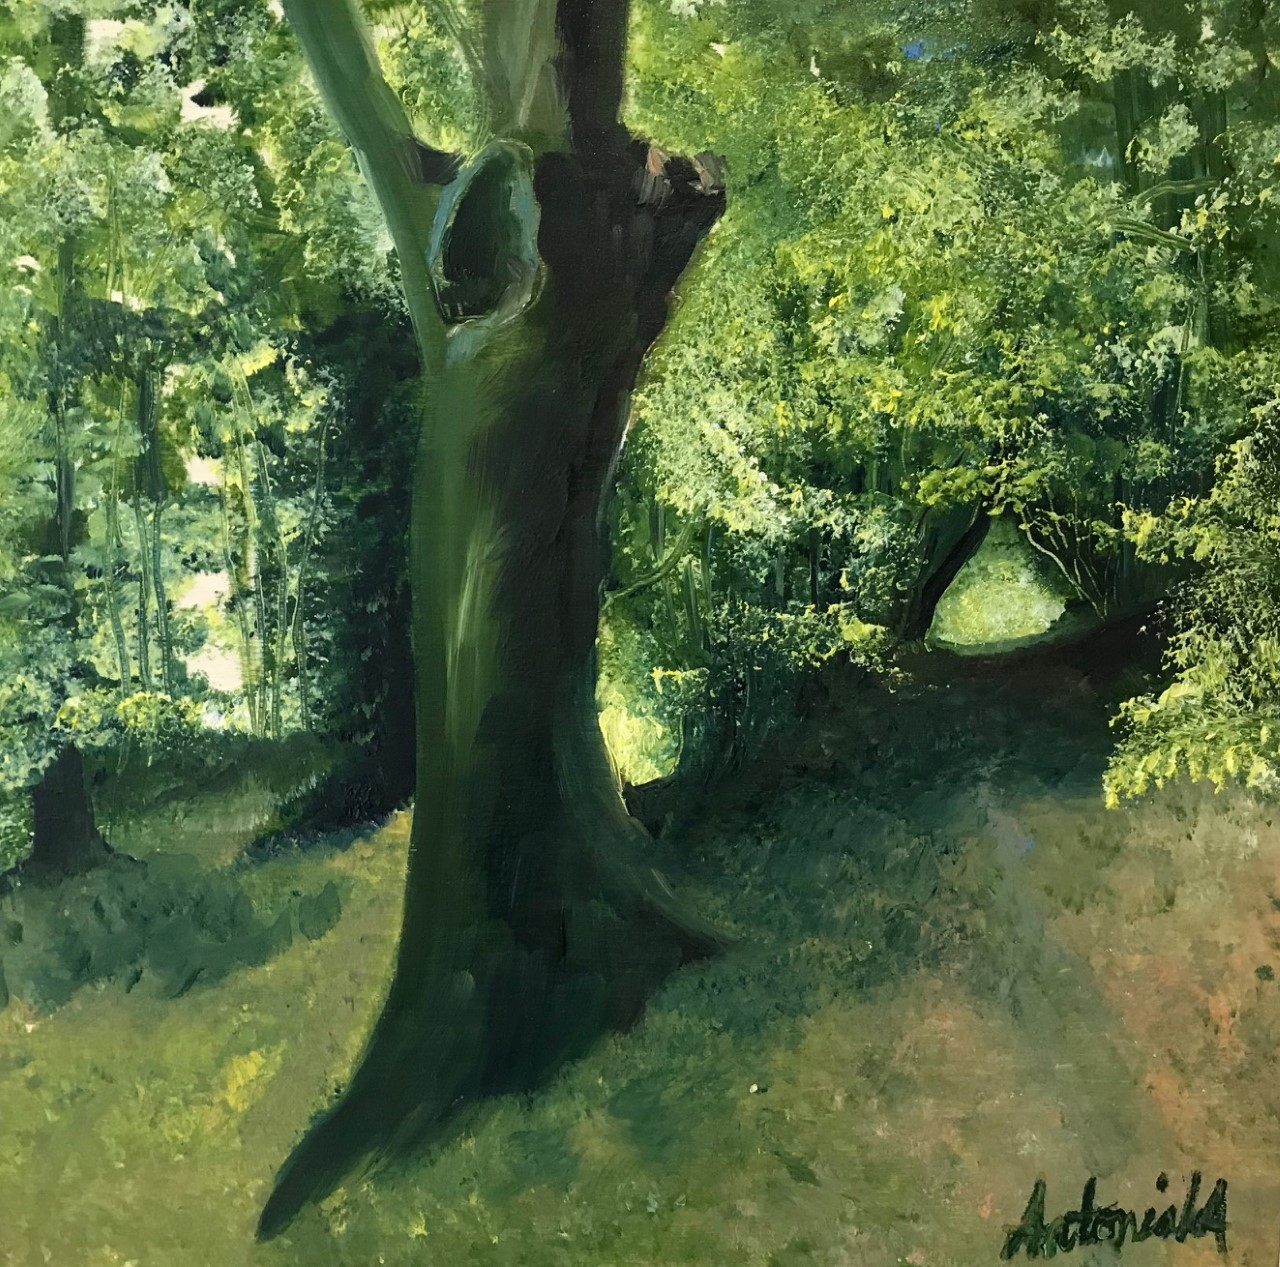 The Woods at Priory Park, Oil Painting, £90